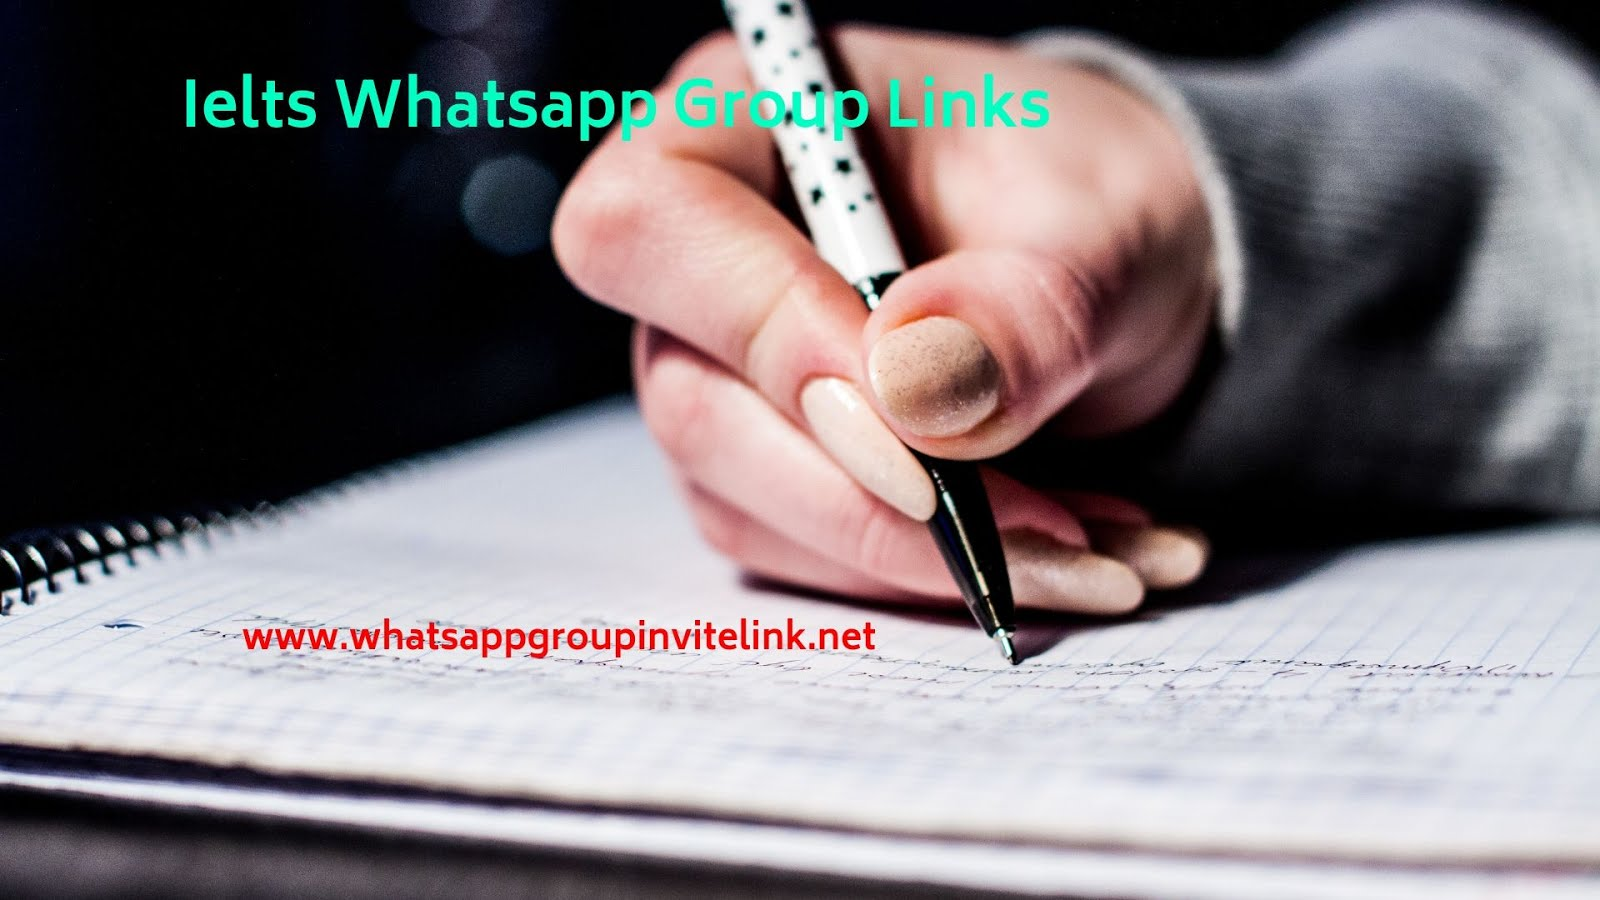 Whatsapp Group Invite Links: IELTS Whatsapp Group Links